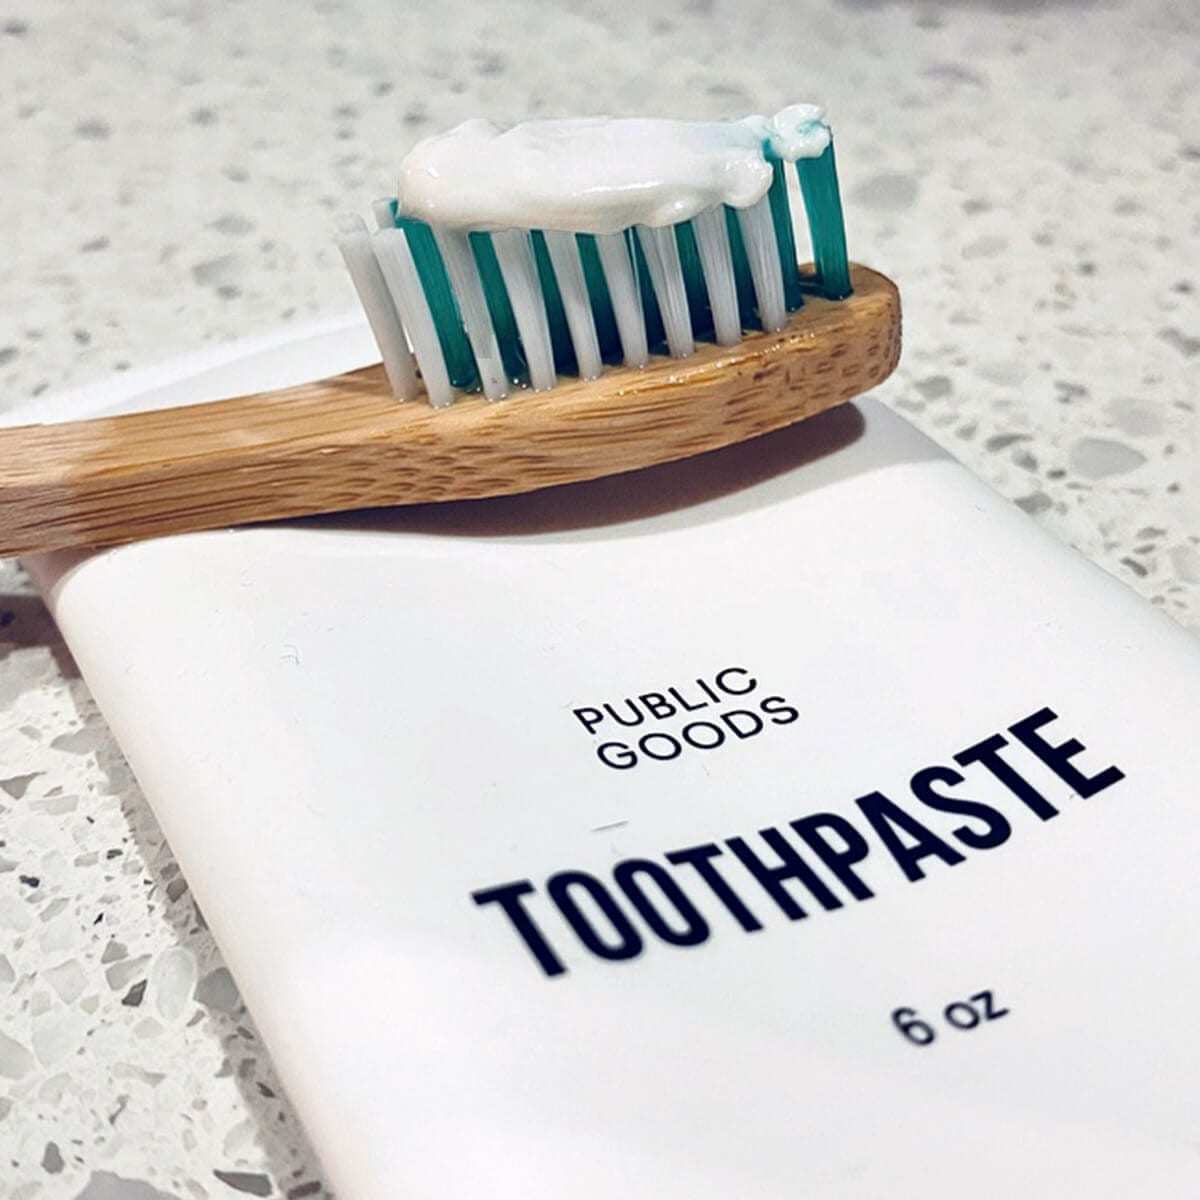 What is Toothpaste Made Of? The Most Common Ingredients